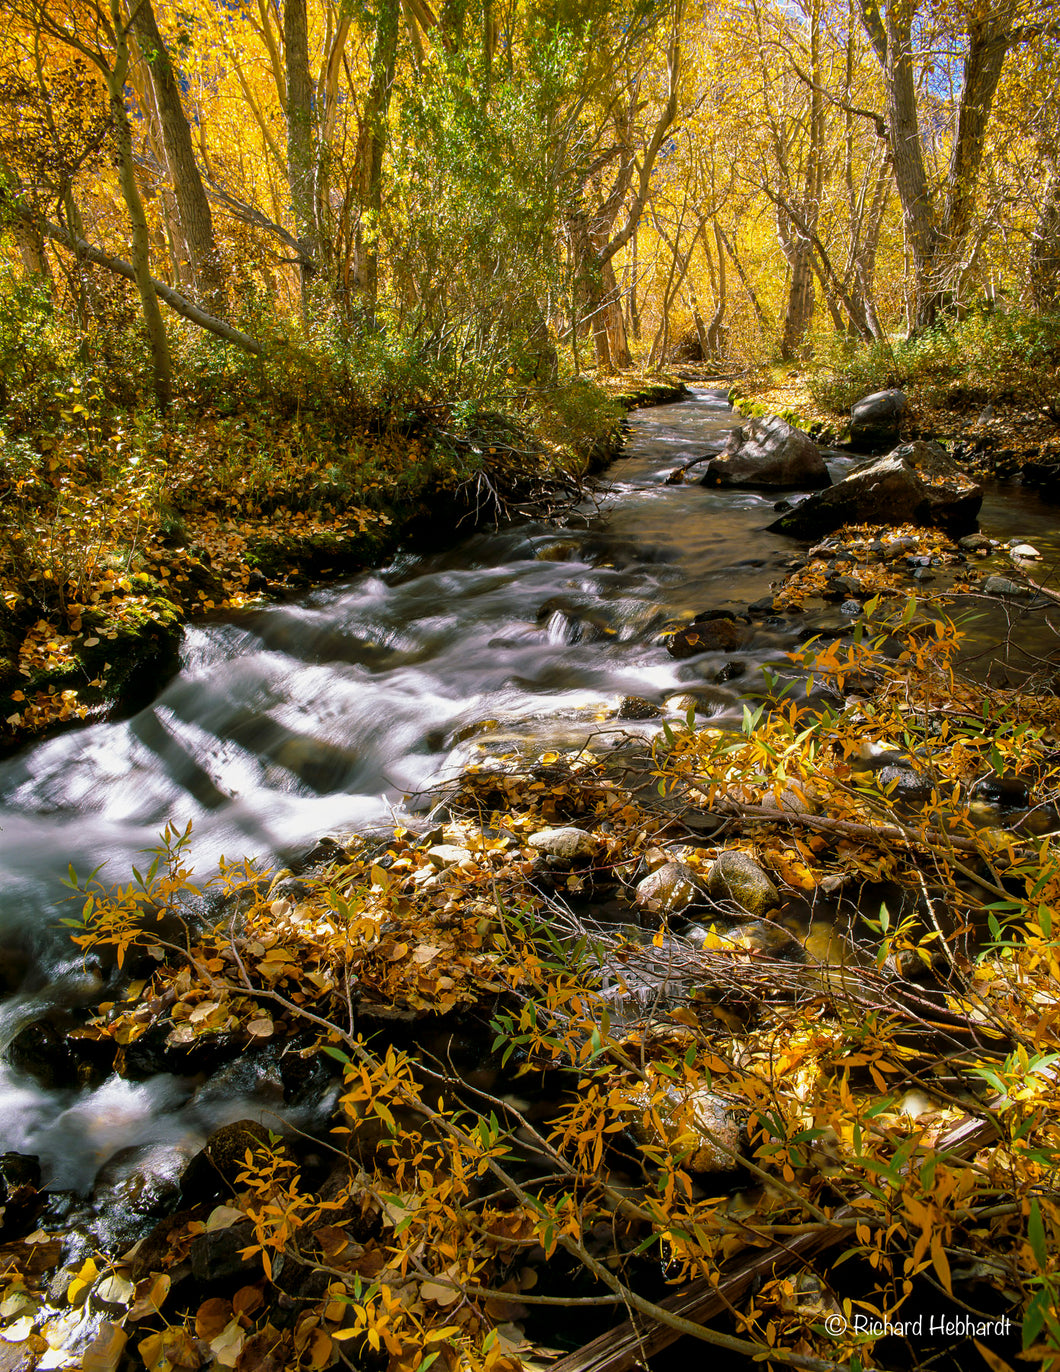 Autumn, McGee Creek, E. Sierra Nevada Mtns., CA